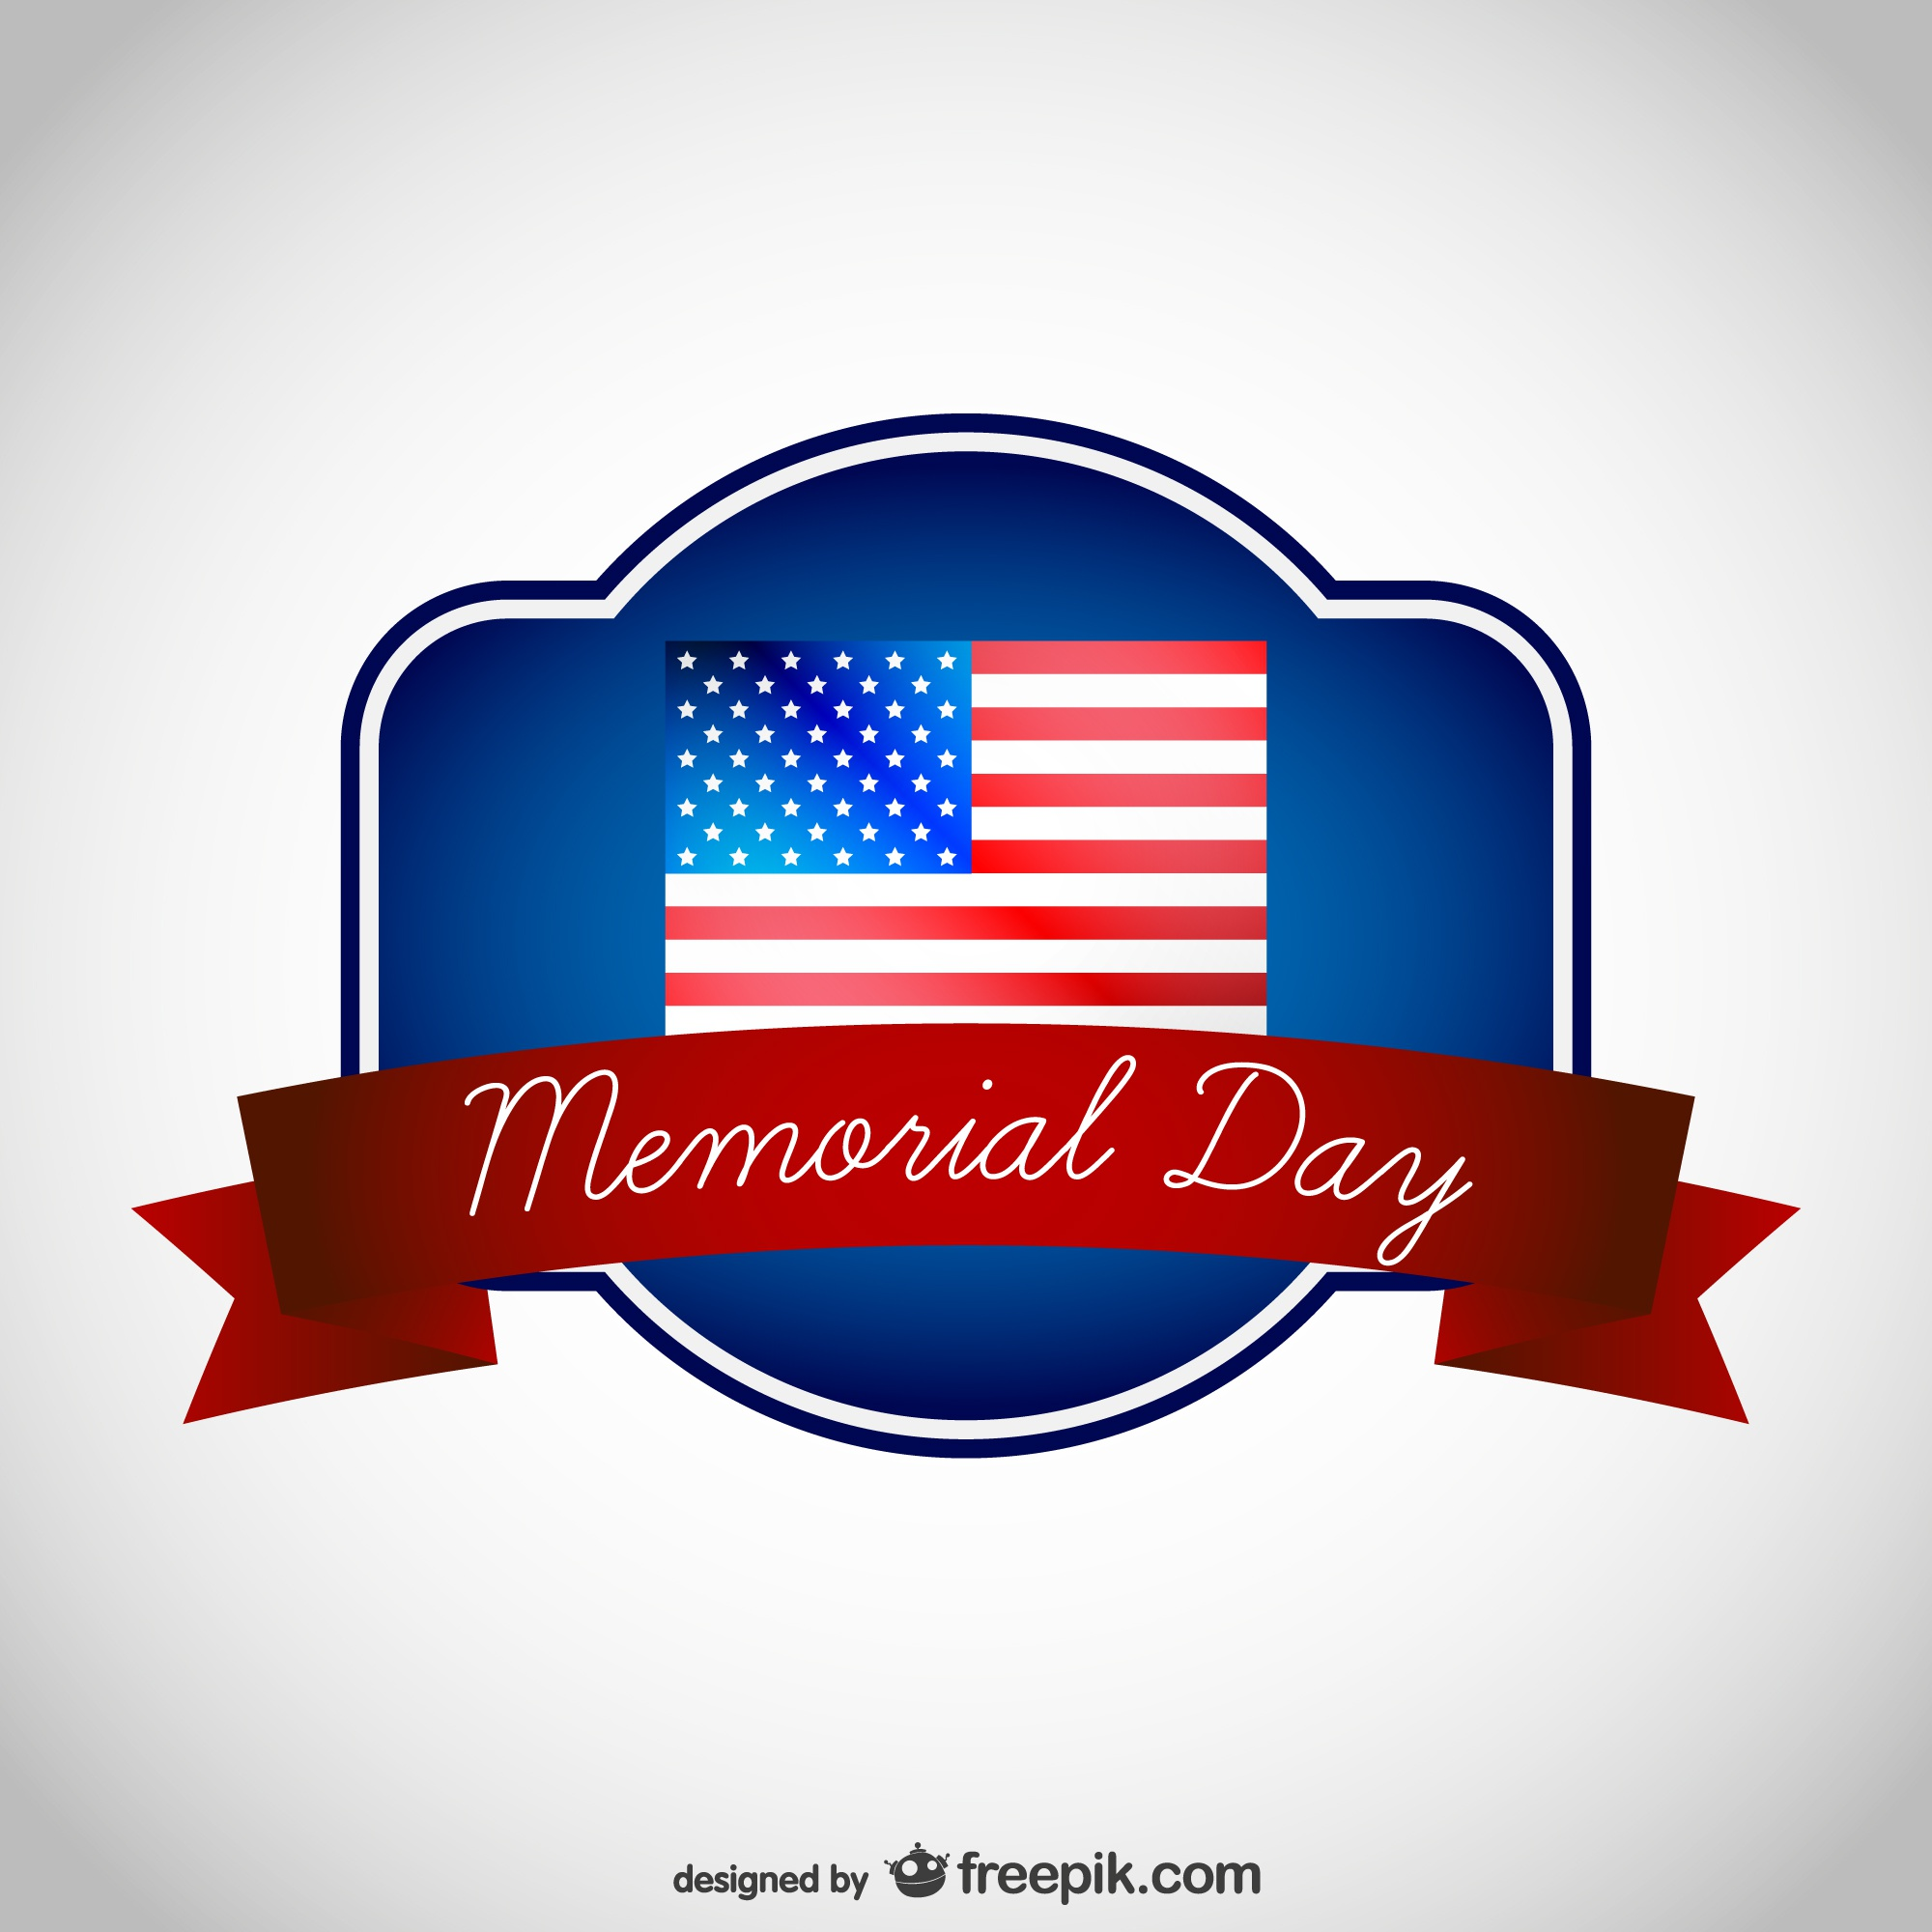 Memorial Day and american flag